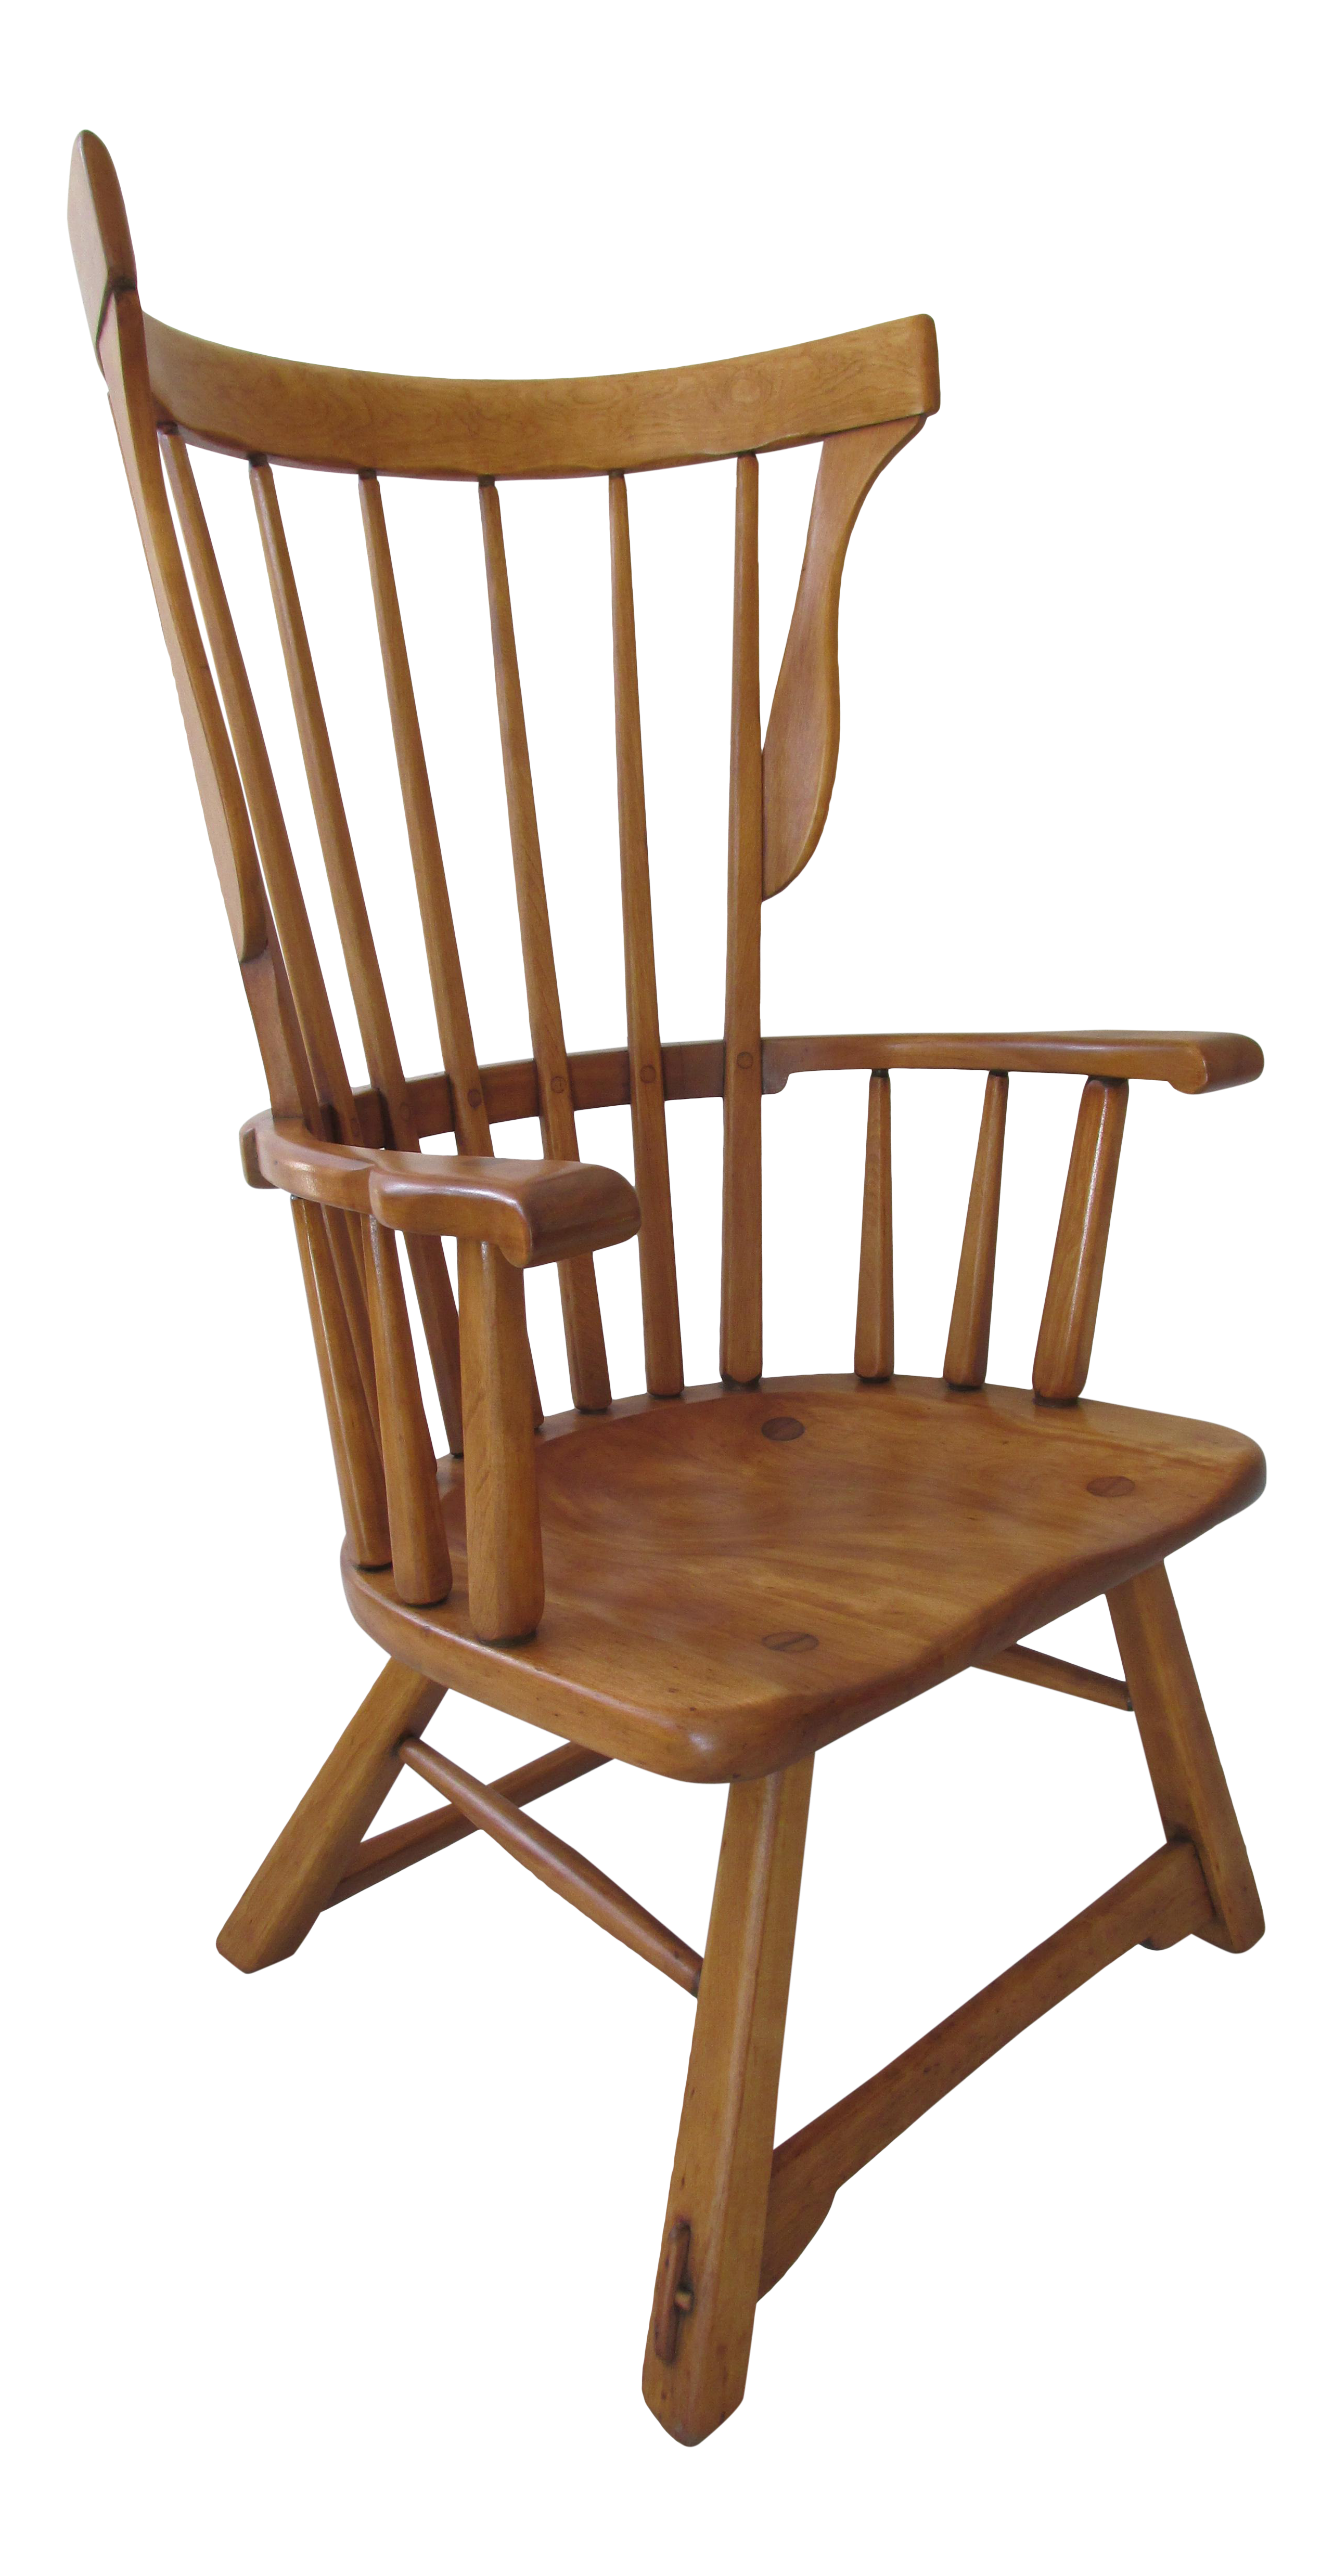 Sikes Furniture Co Modernist Windsor Lounge Chair Chairish